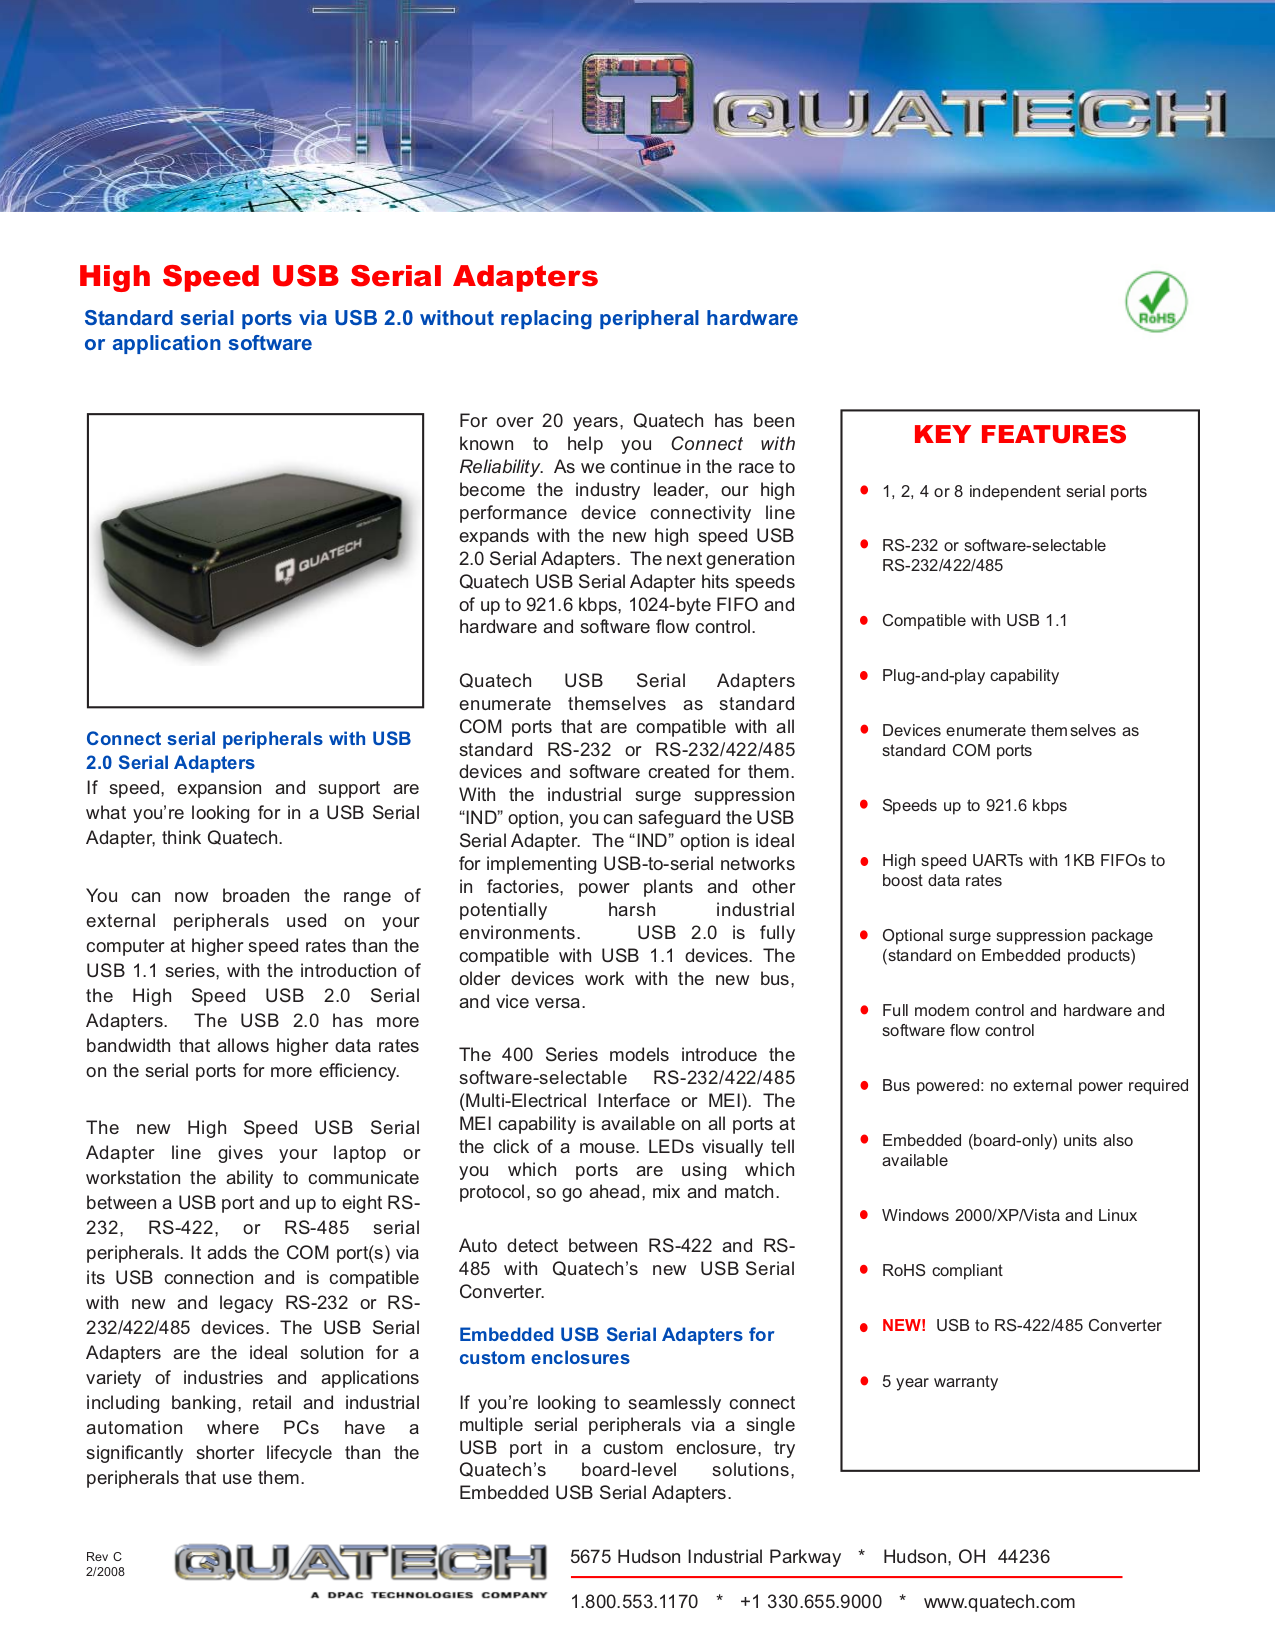 pdf for Quatech Other QSU2-400 Adapters manual